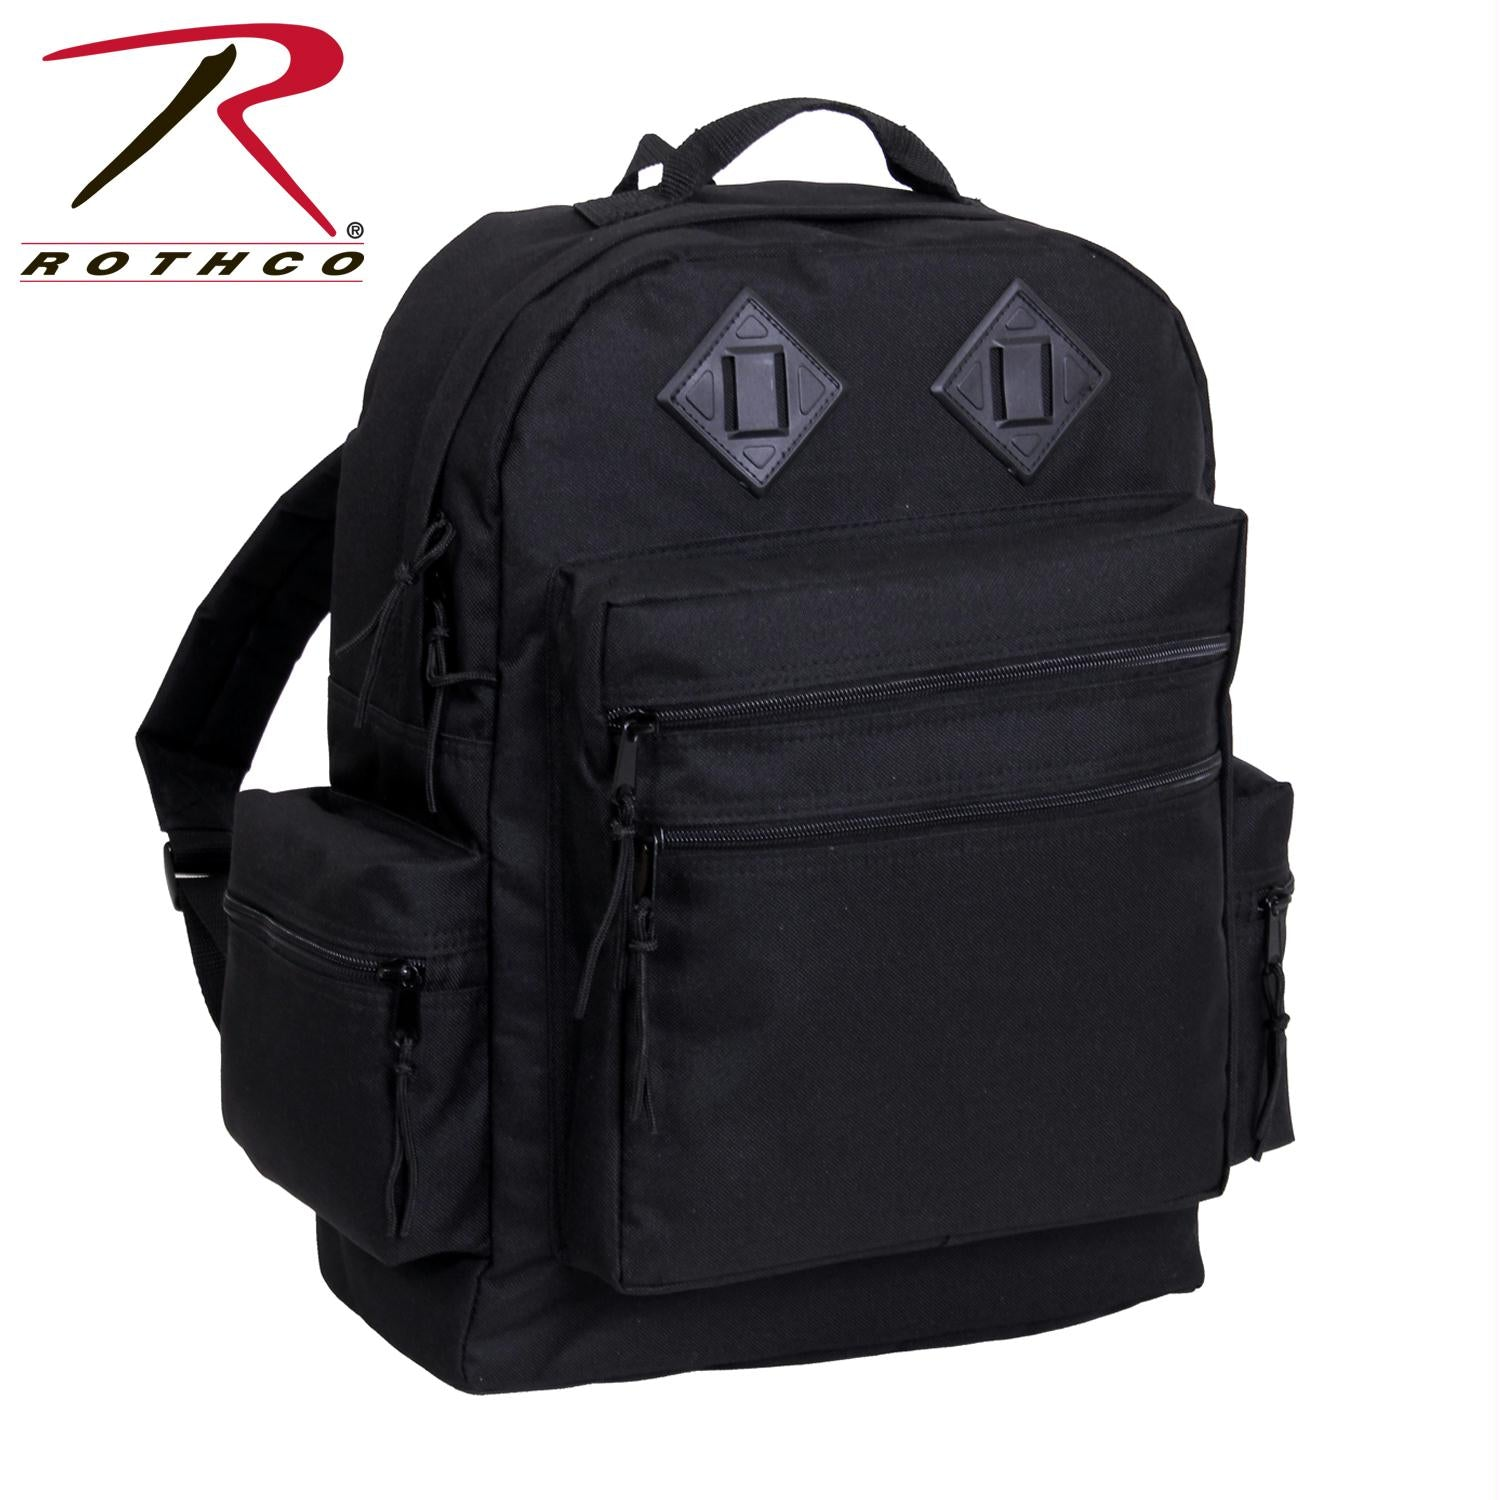 Rothco Deluxe Day Pack - Black